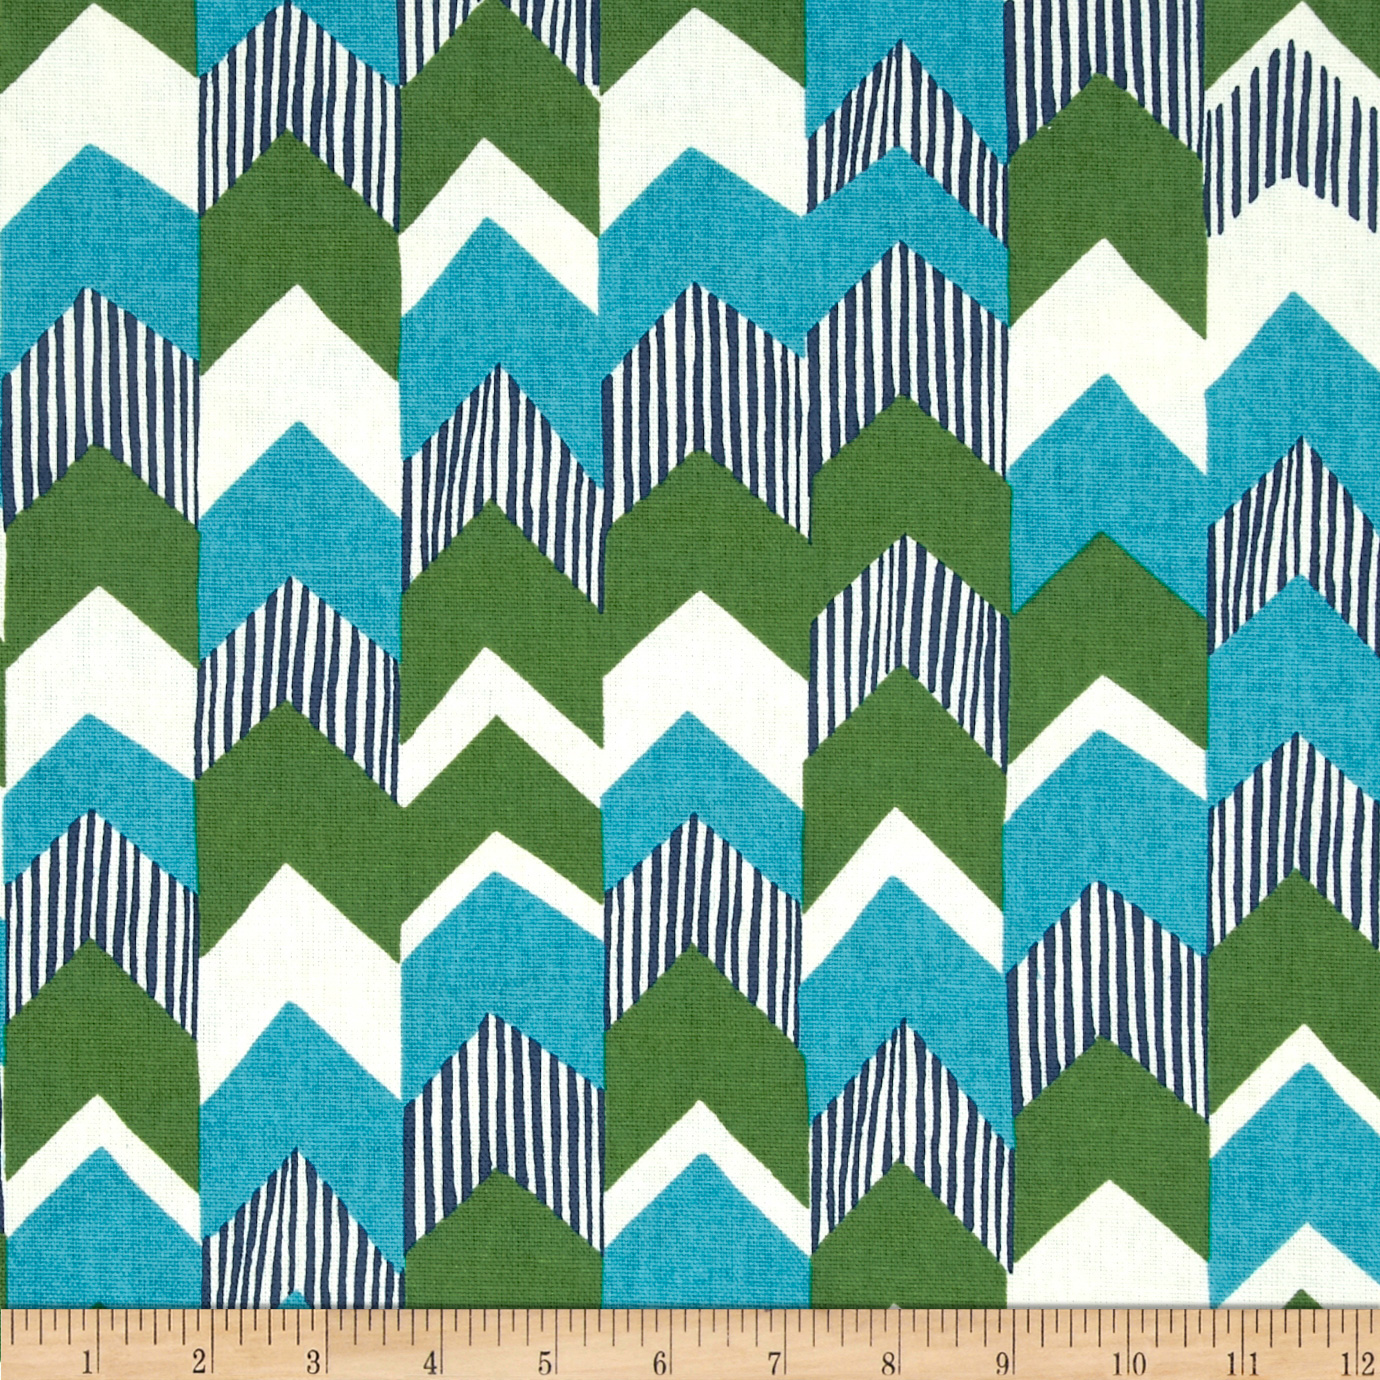 Richloom Nino Stripe Teal Home Decor Fabric